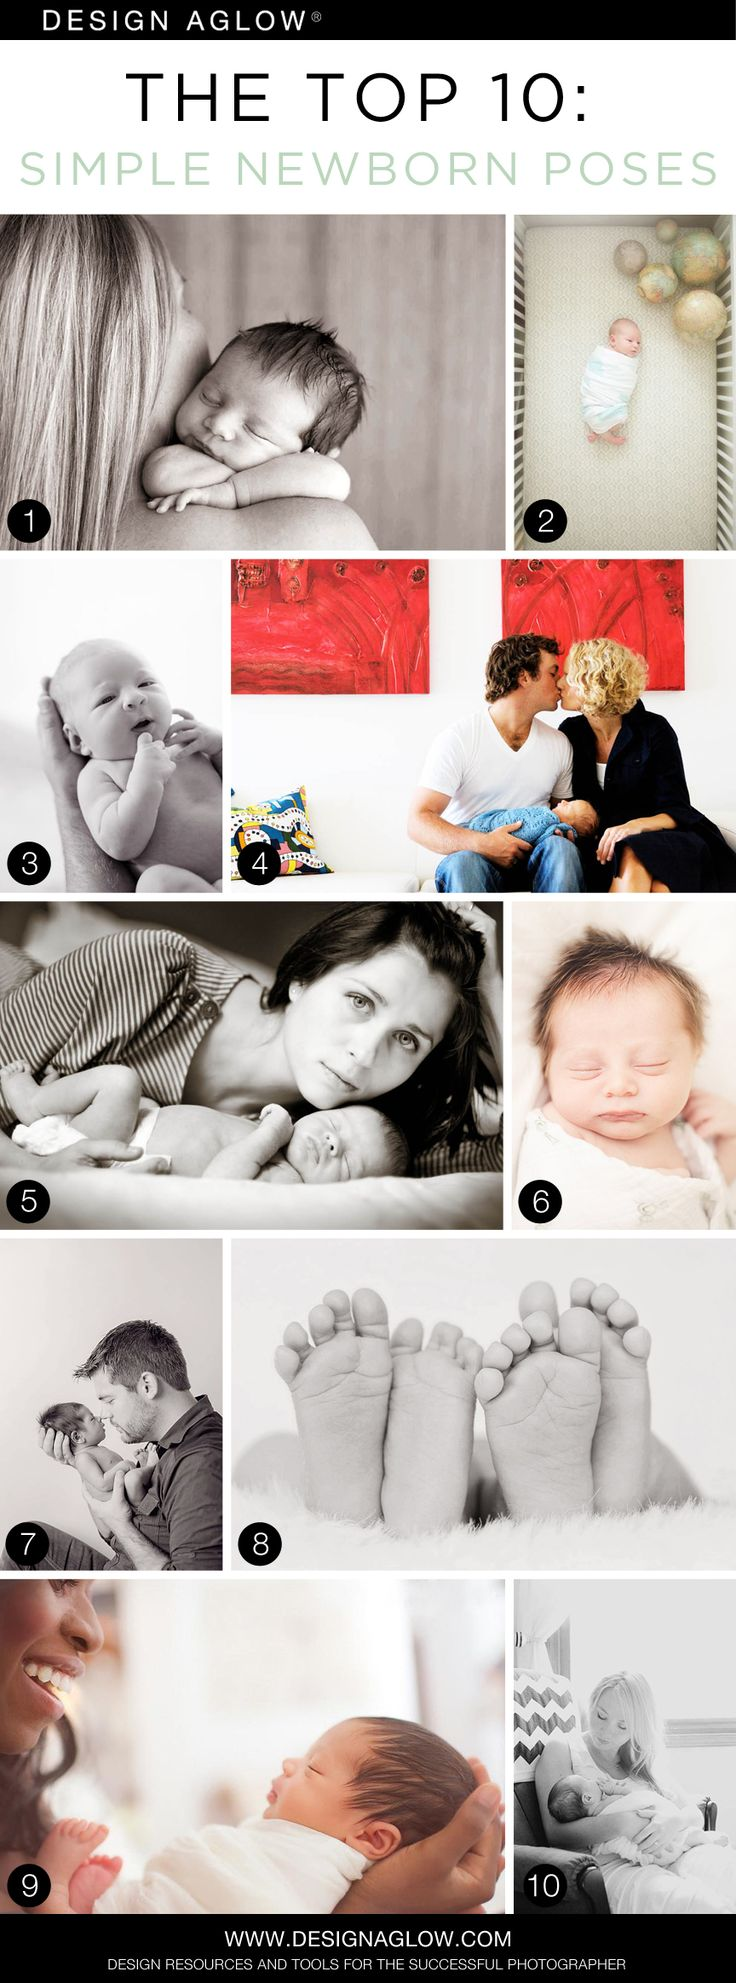 What we love about these Top Ten newborn poses: They can all be accomplished safely in under a minute, without any spotting, composites, or Photoshop magic; They rely on classic portraiture techniq...